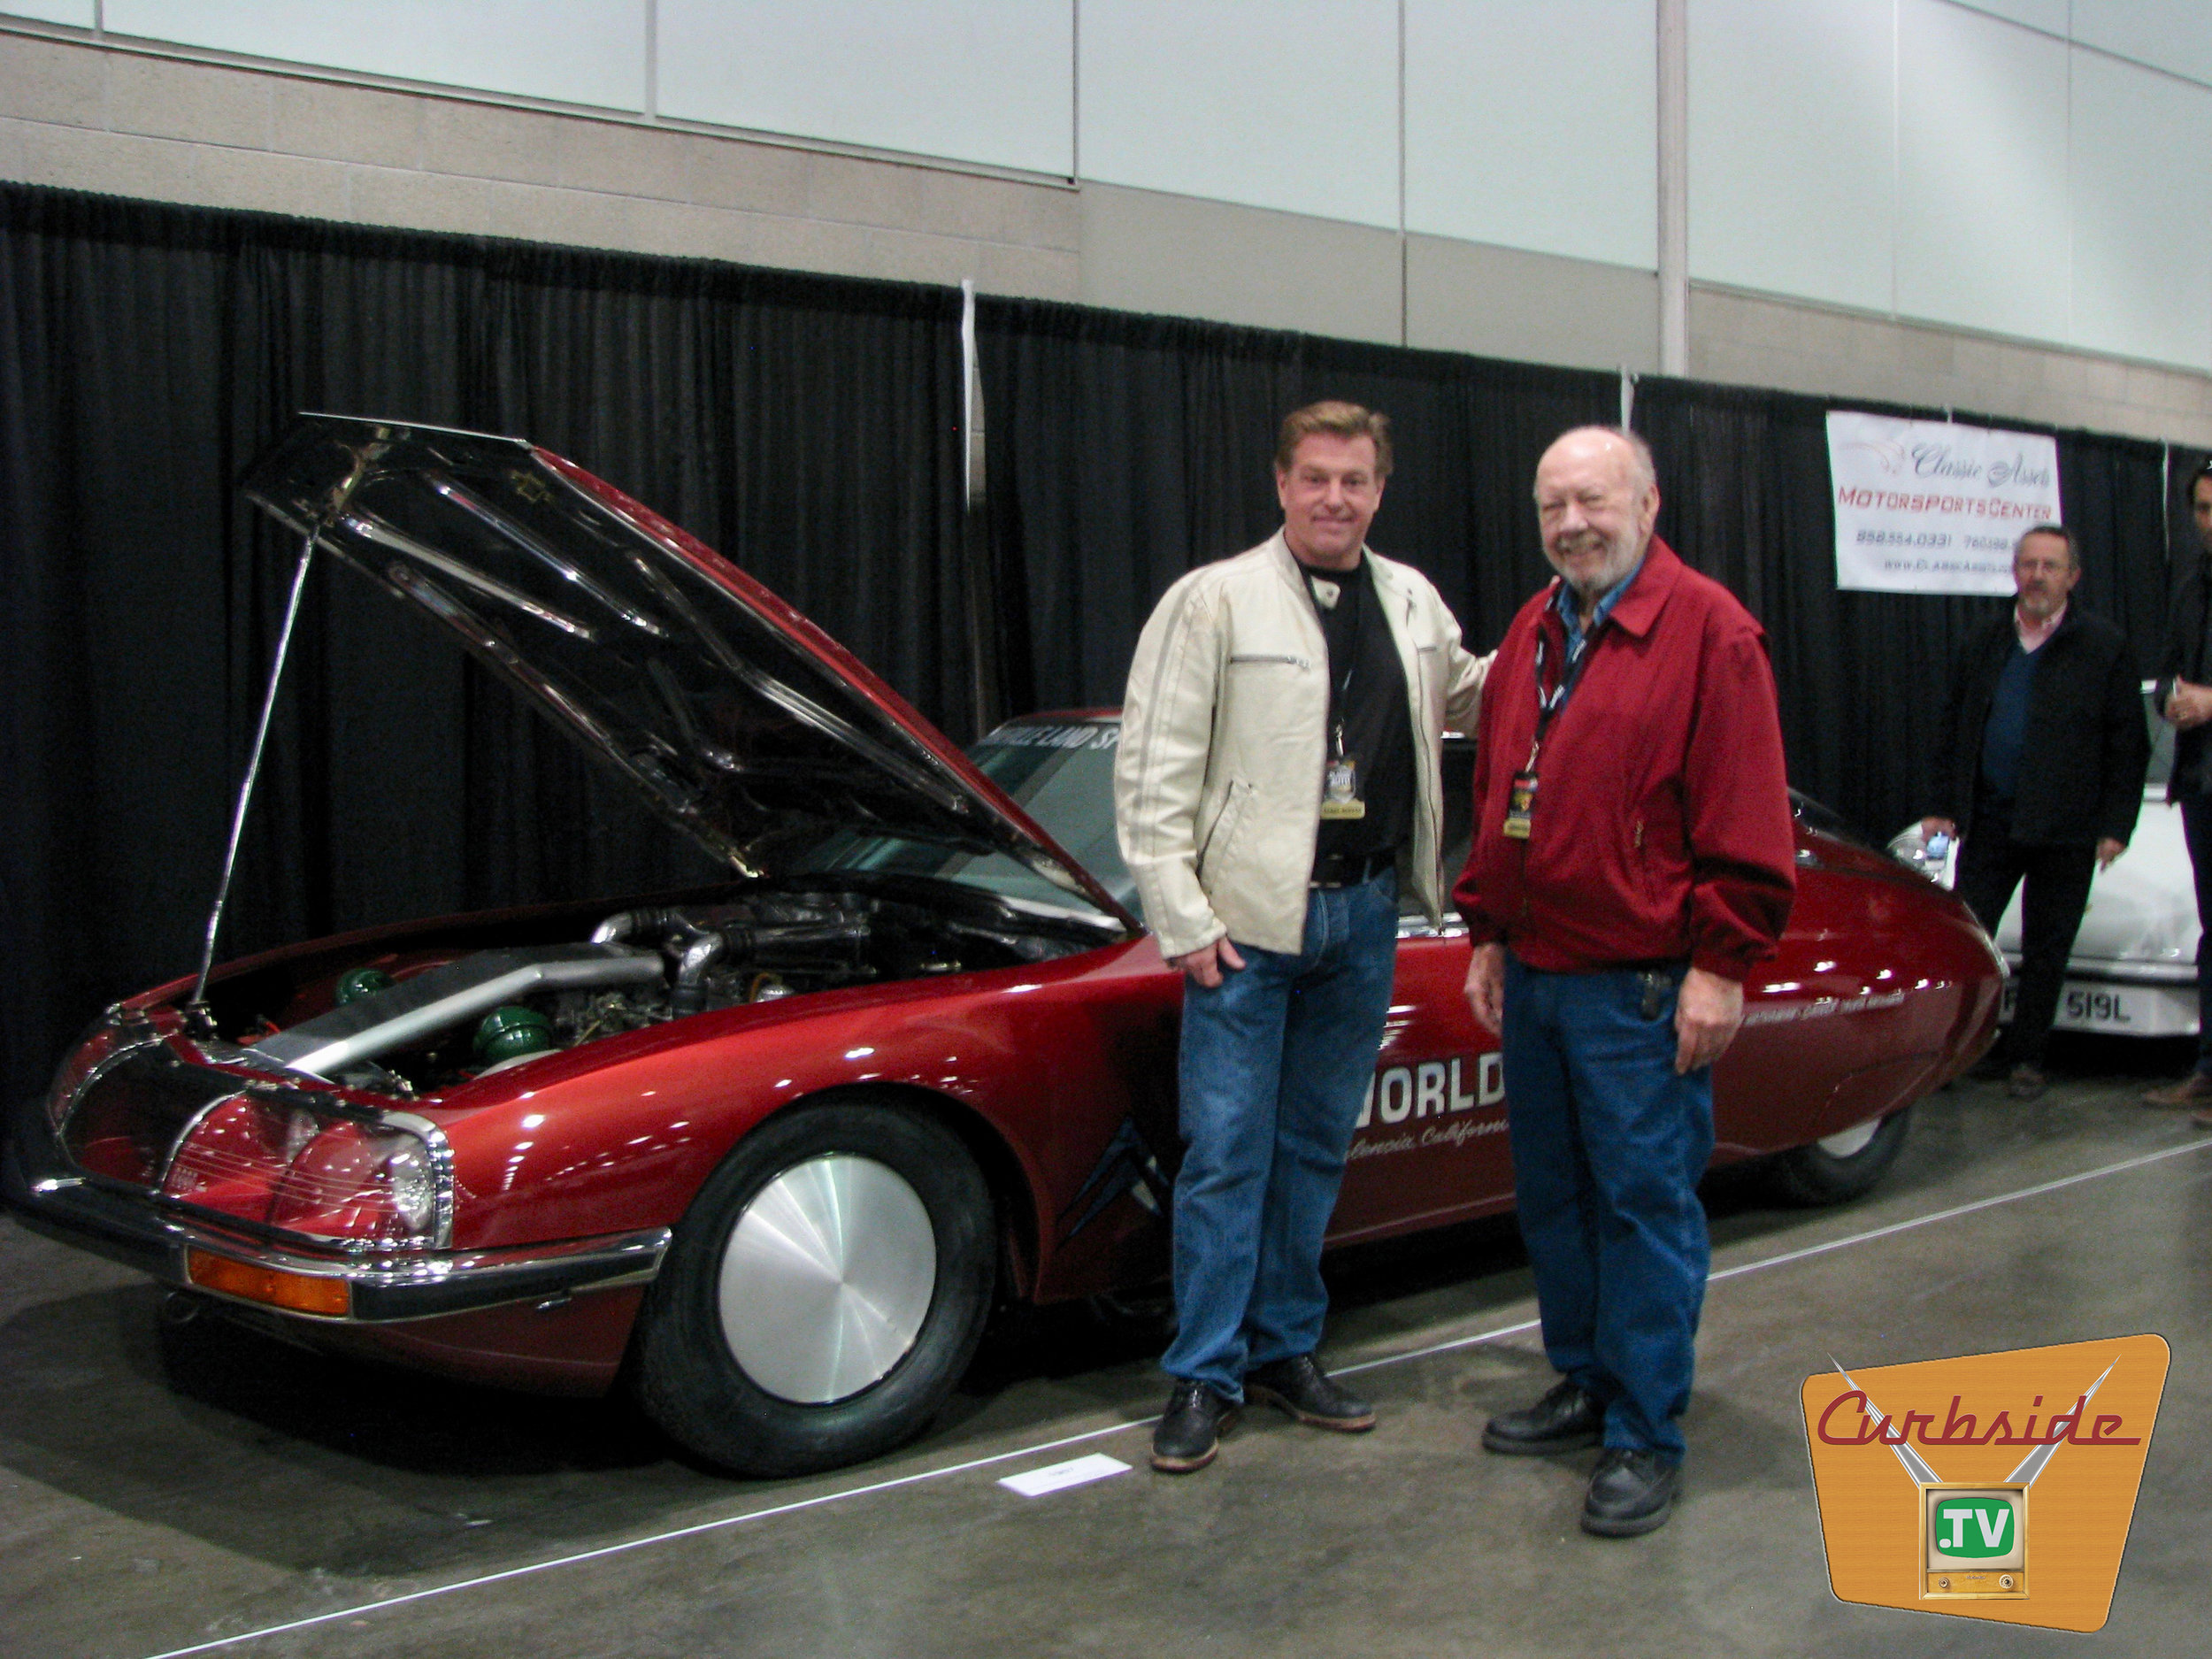 Chip Foose and Jerry Hathaway